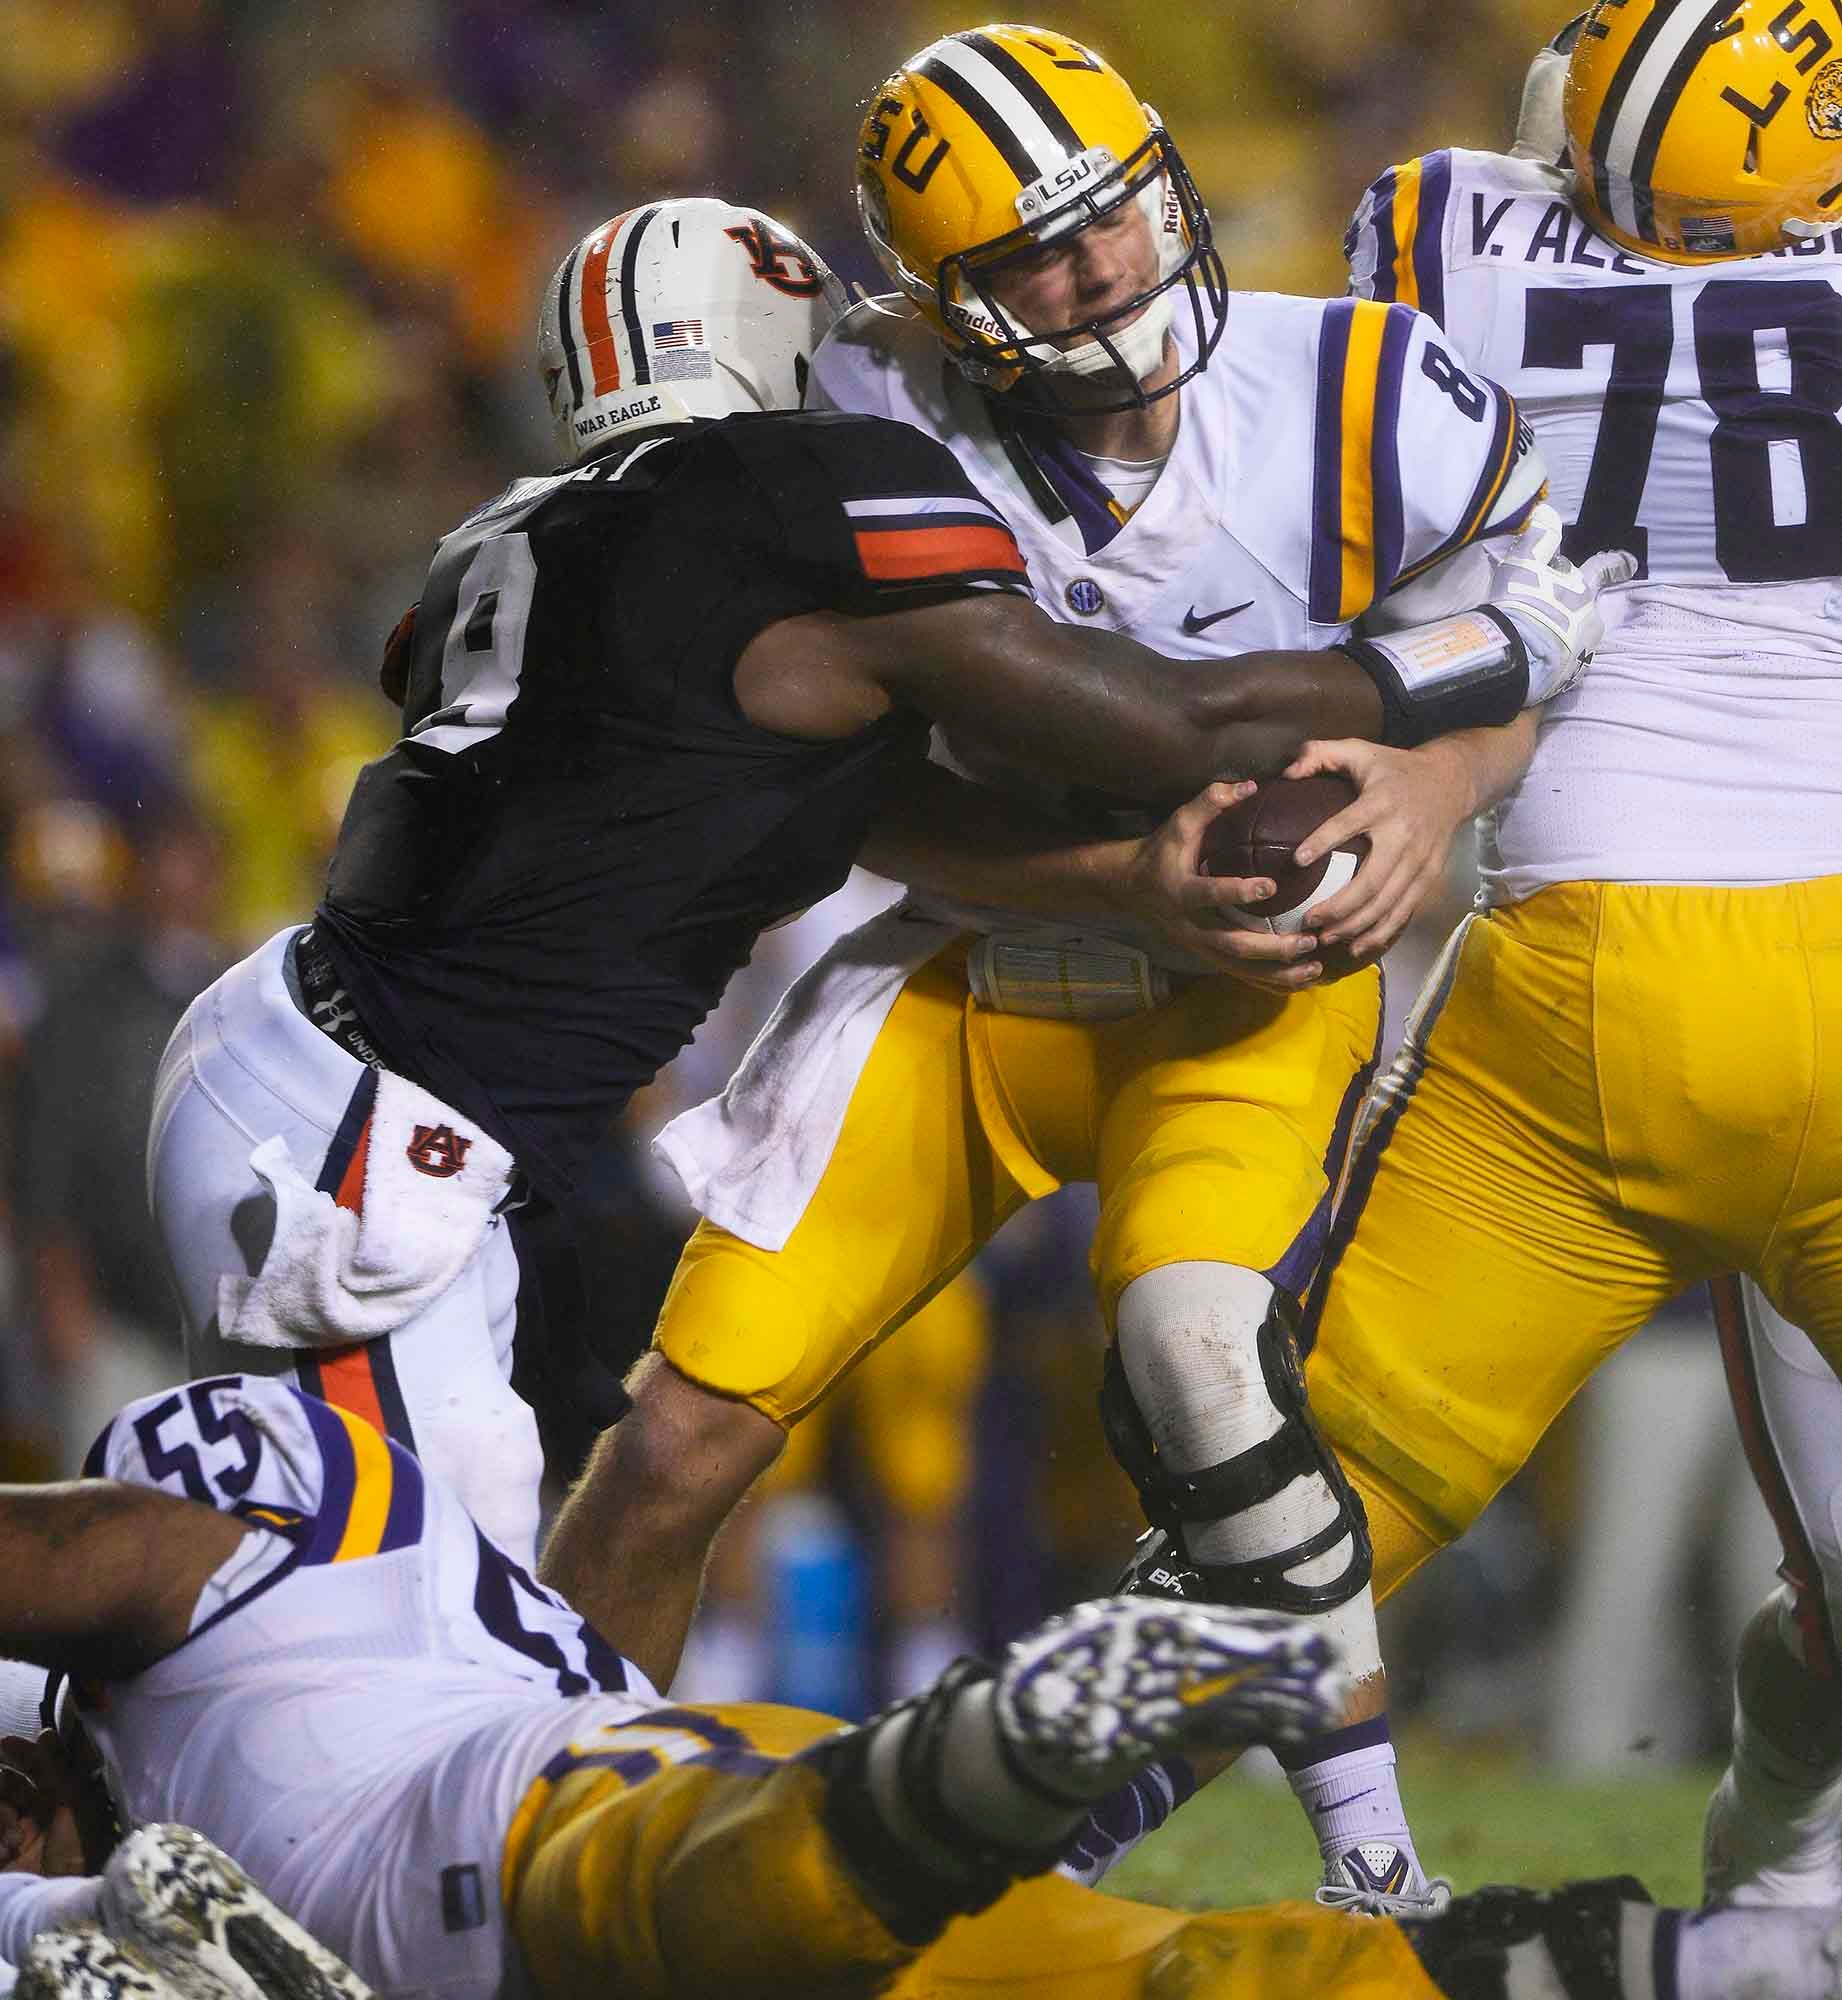 Auburn made some good plays against LSU, incl